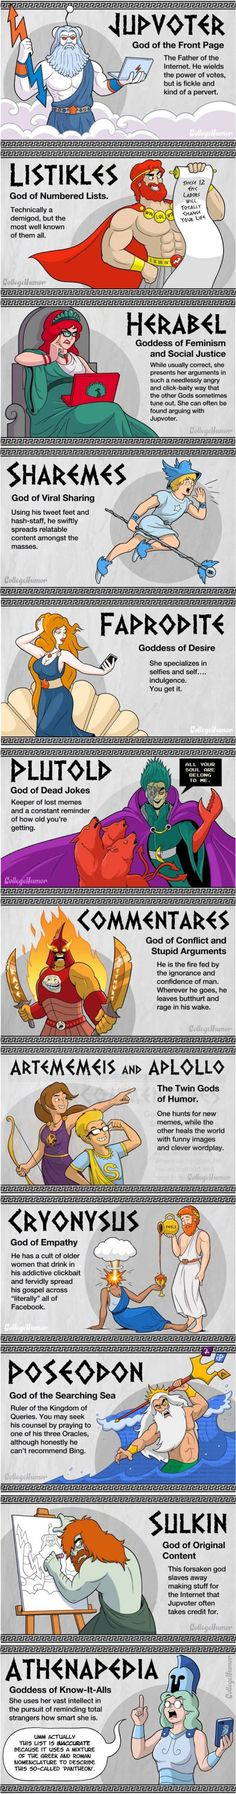 The 13 Gods of the Internet Pantheon :-D